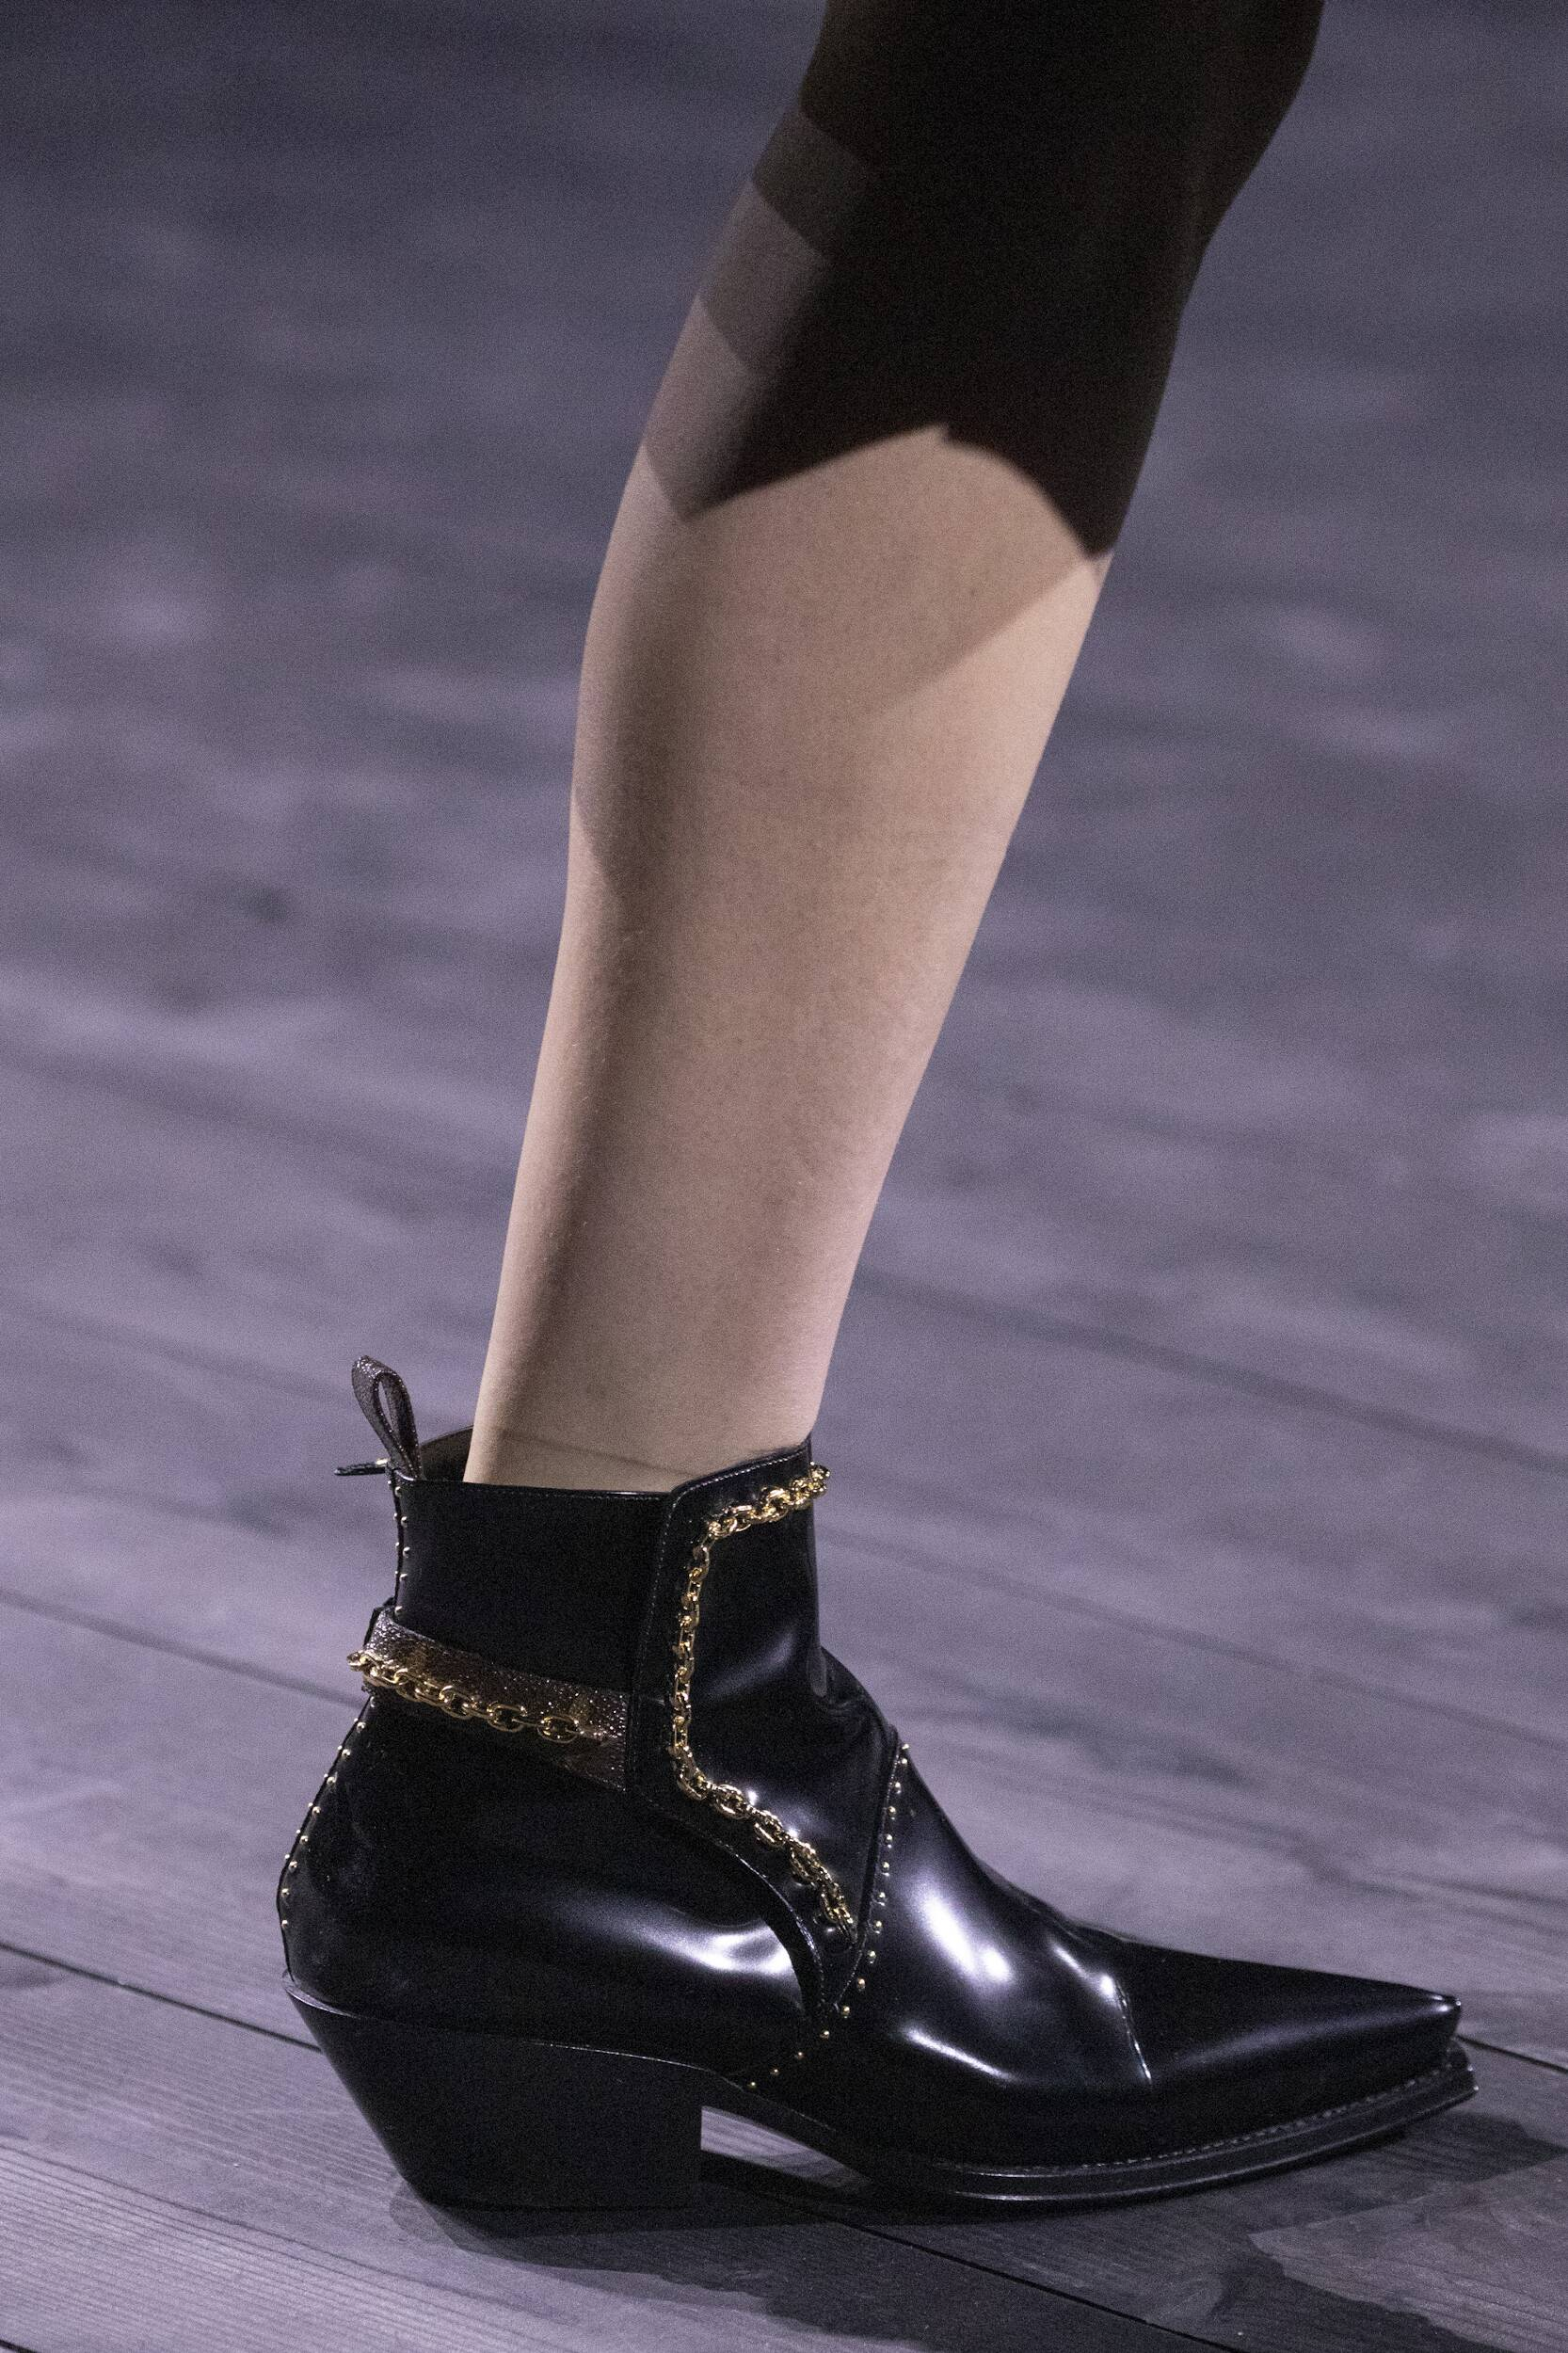 Louis Vuitton Shoes 2020 Fall Winter 2020 Collection